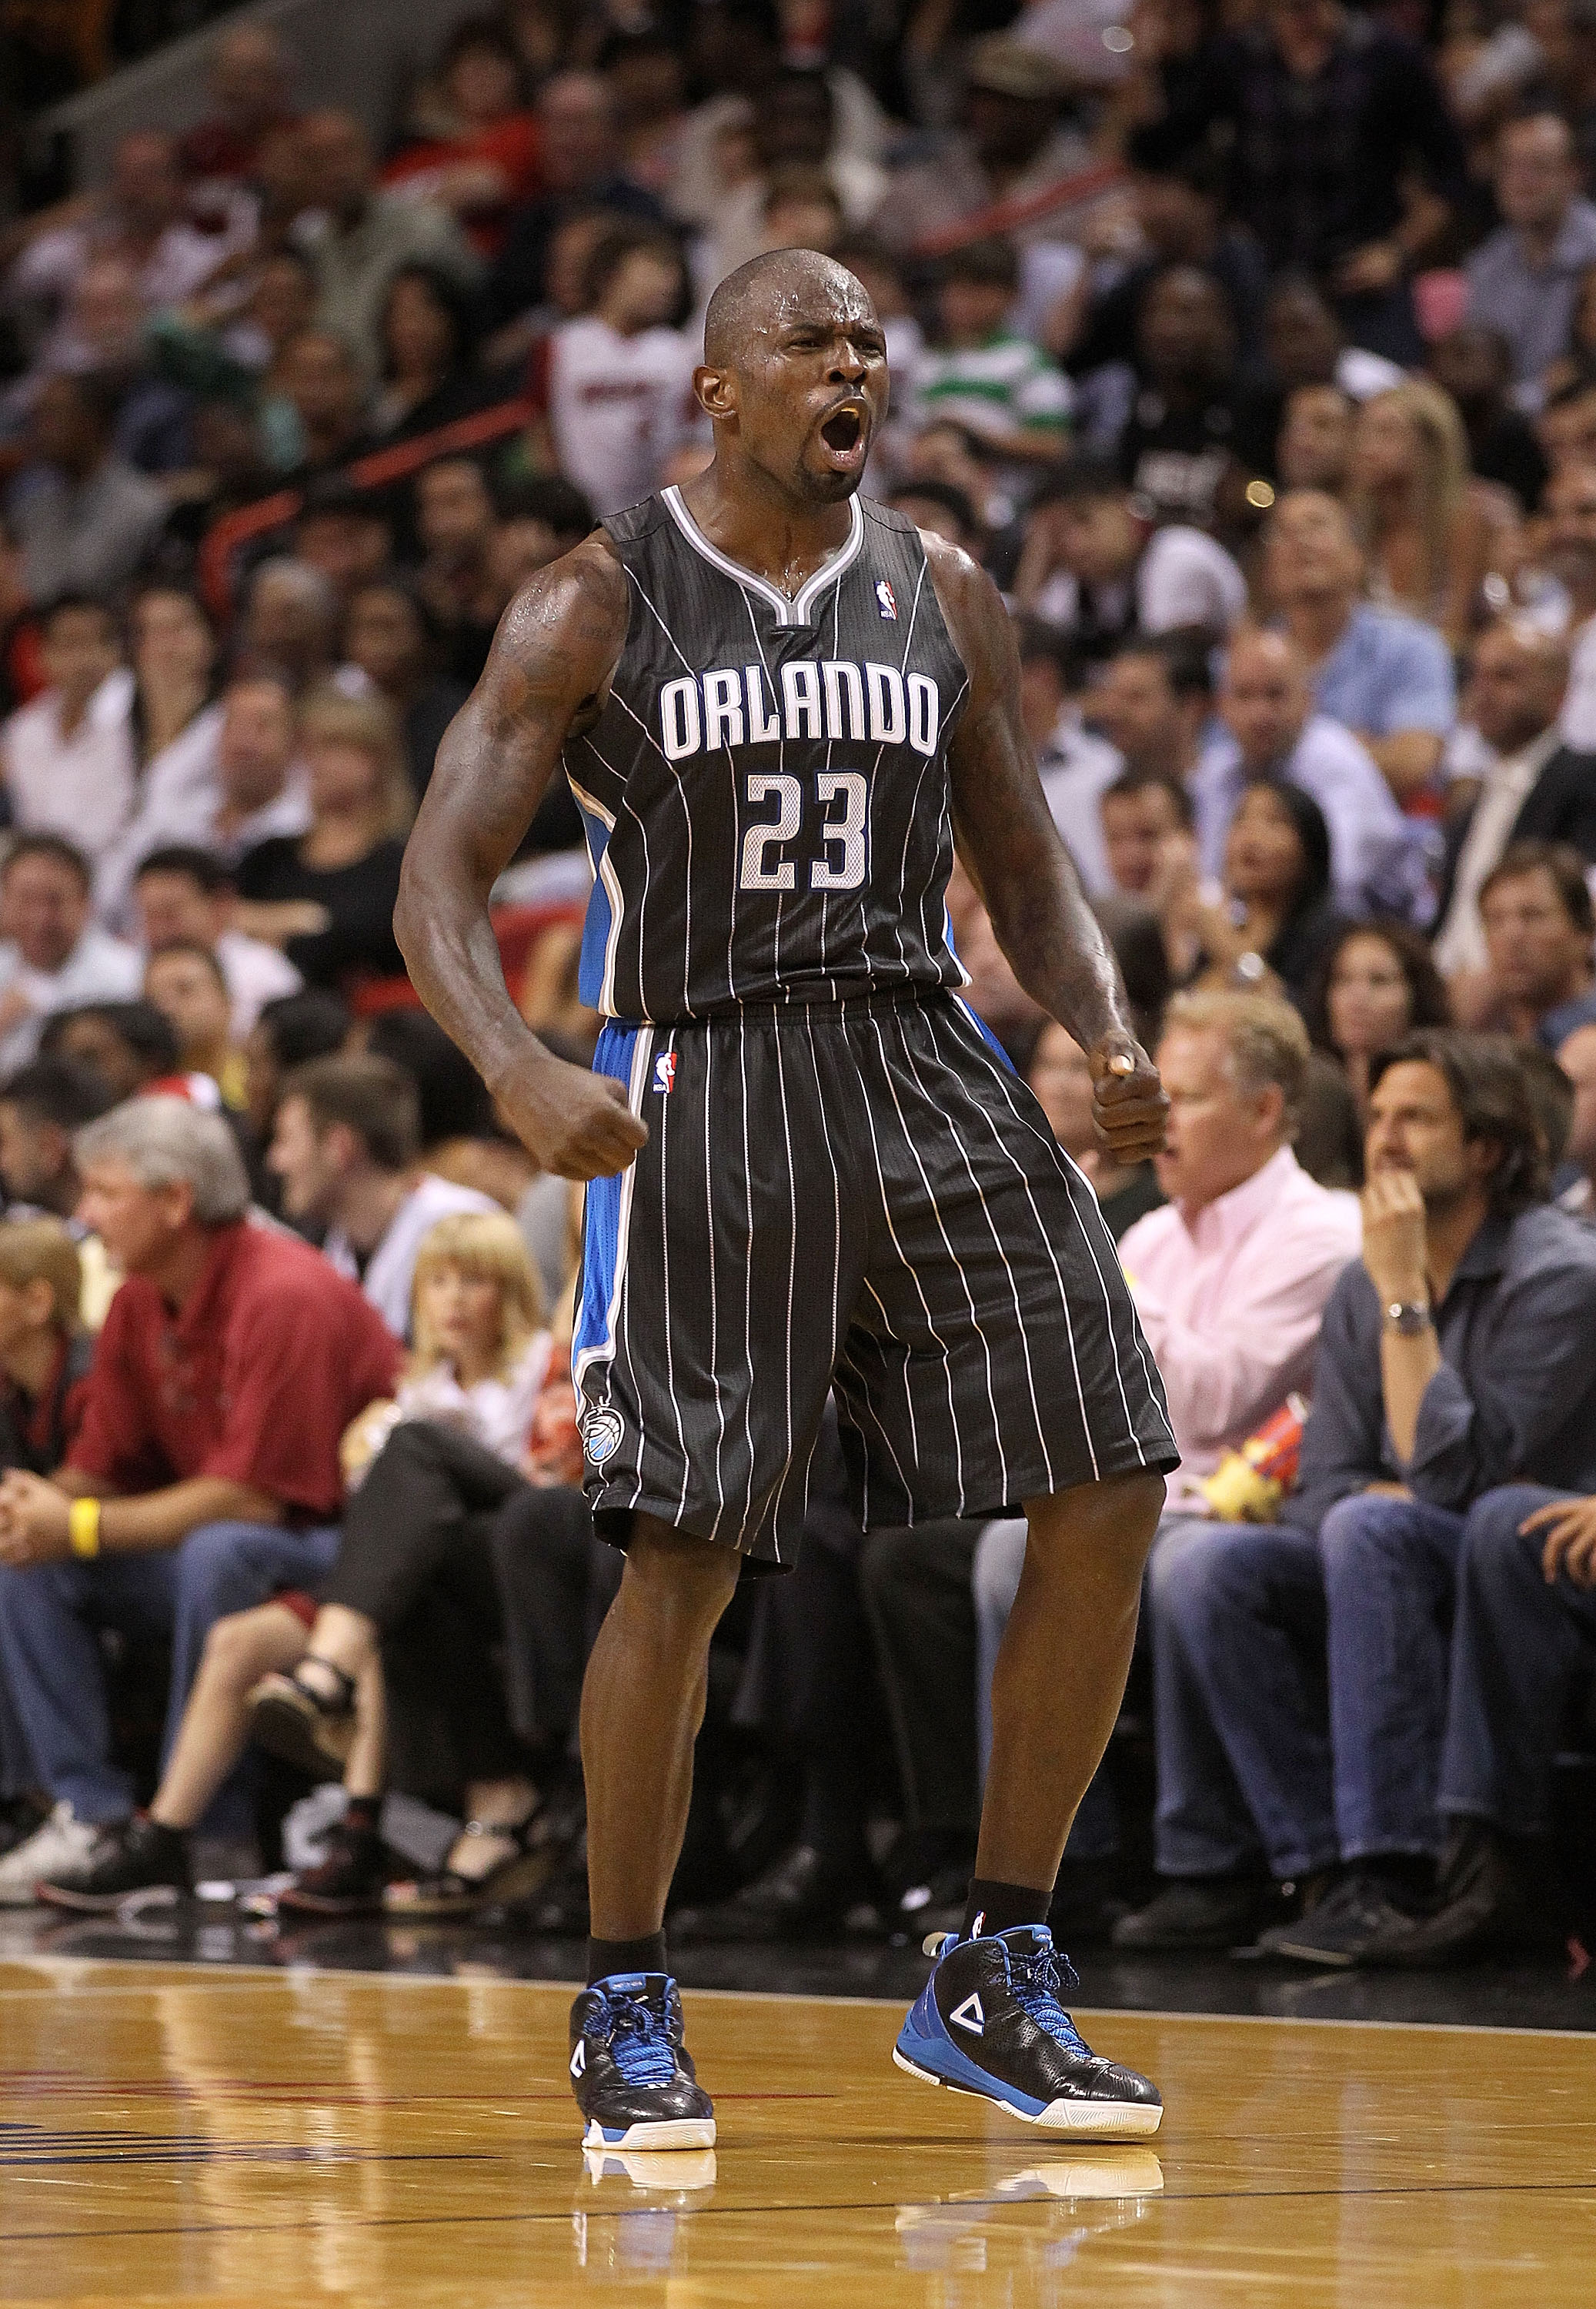 MIAMI, FL - MARCH 03:  Jason Richardson #23 of the Orlando Magic reacts after a 3 pointer during a game against the Miami Heat at American Airlines Arena on March 3, 2011 in Miami, Florida. NOTE TO USER: User expressly acknowledges and agrees that, by dow